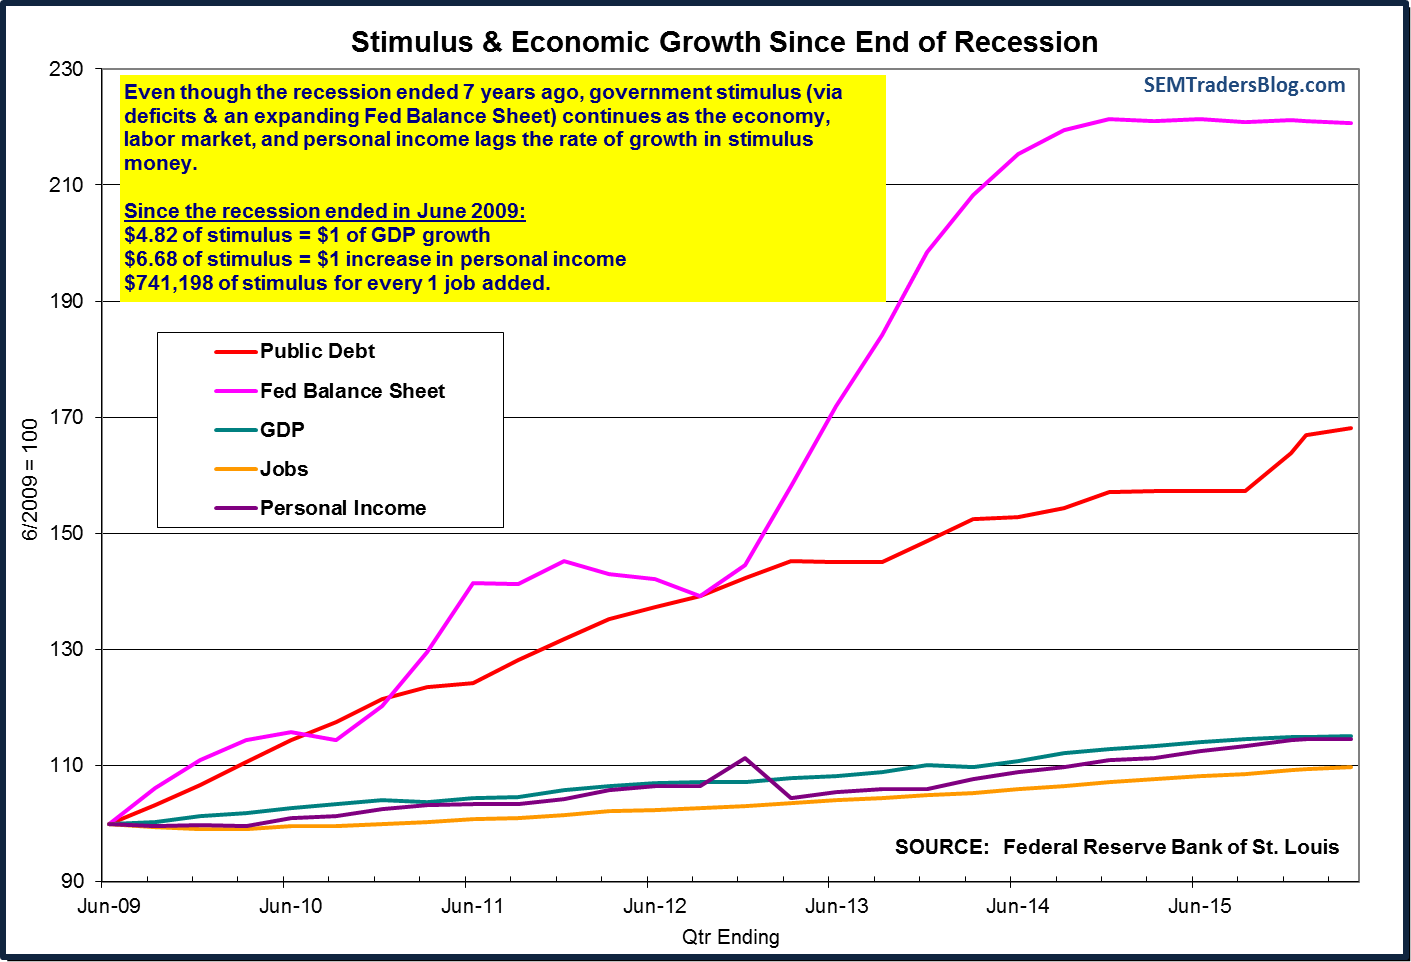 Stimulus & Growth